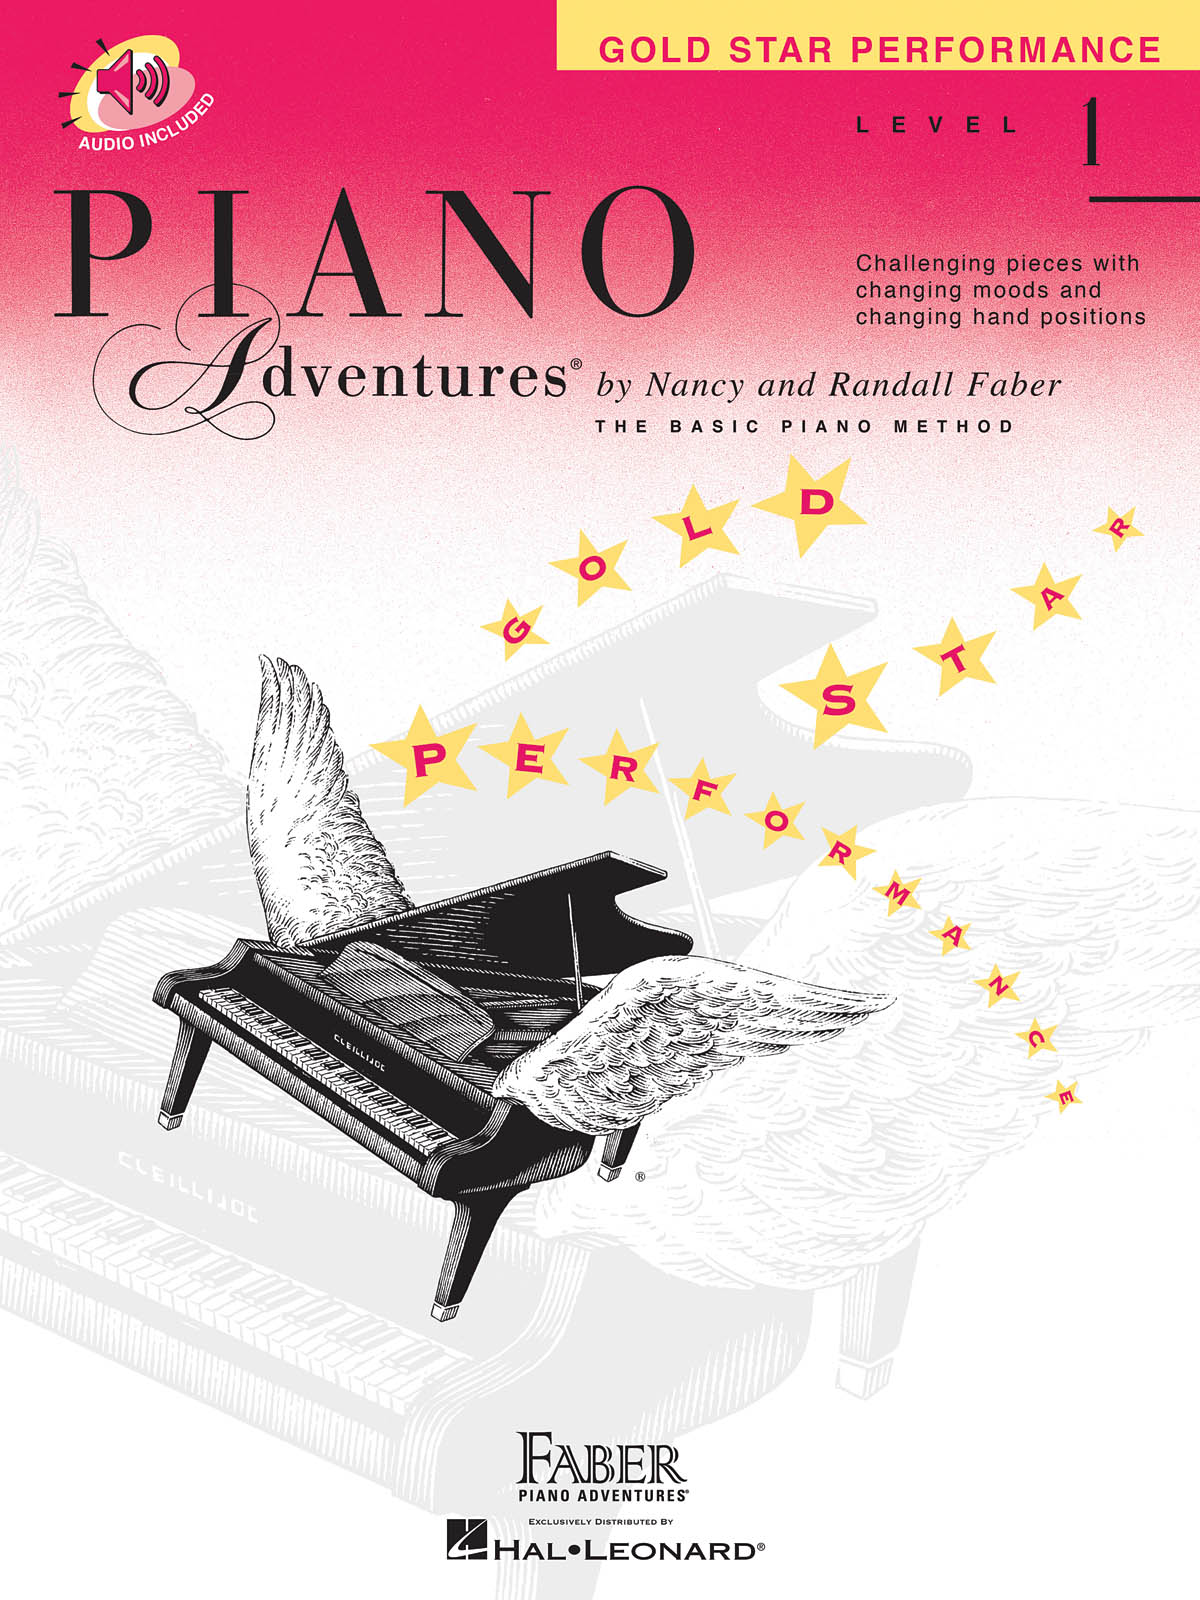 Faber Piano Adventures, Gold Star Performance, Level 1